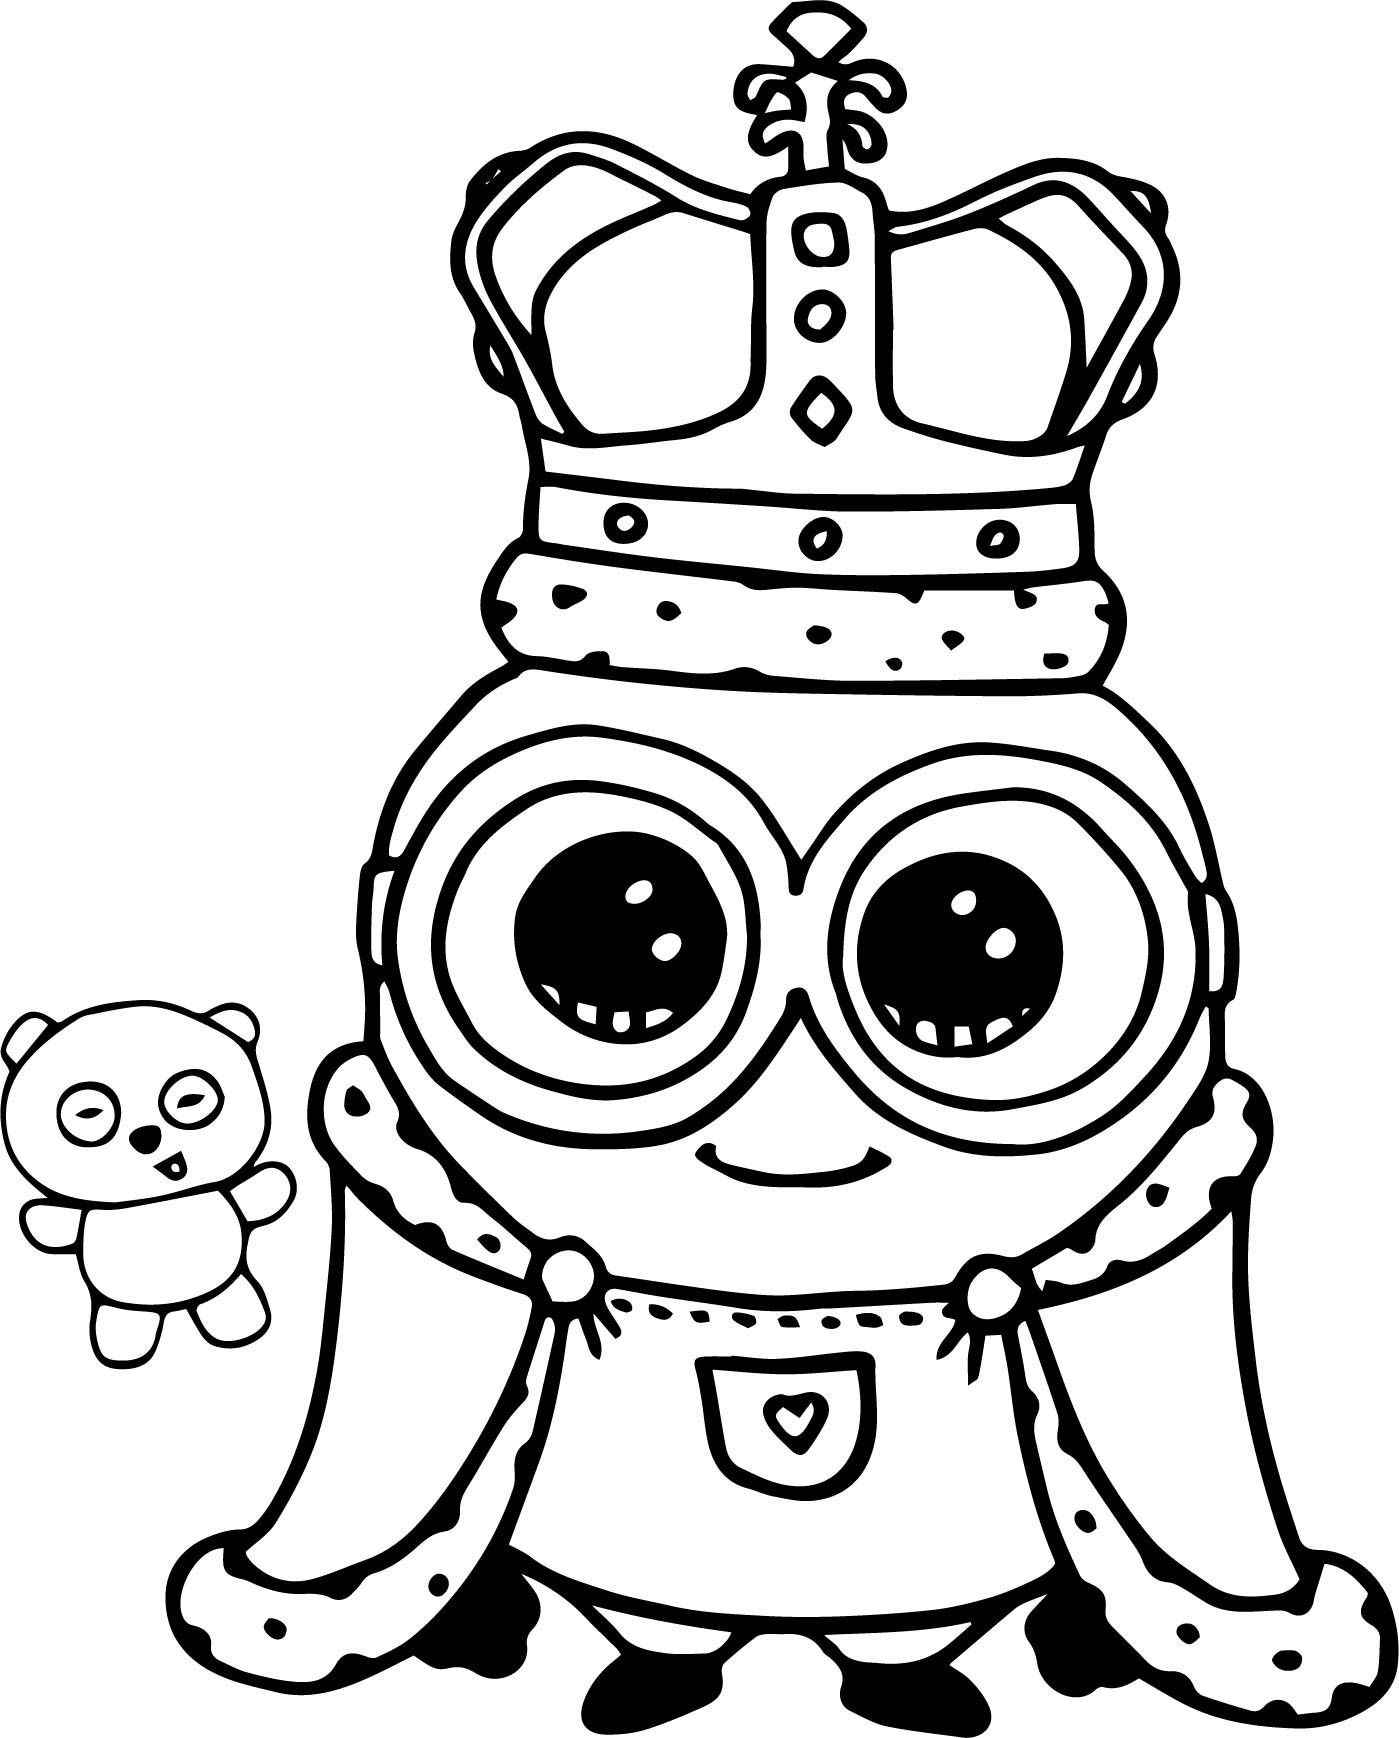 Pin By Gabriela On M Minion Coloring Pages